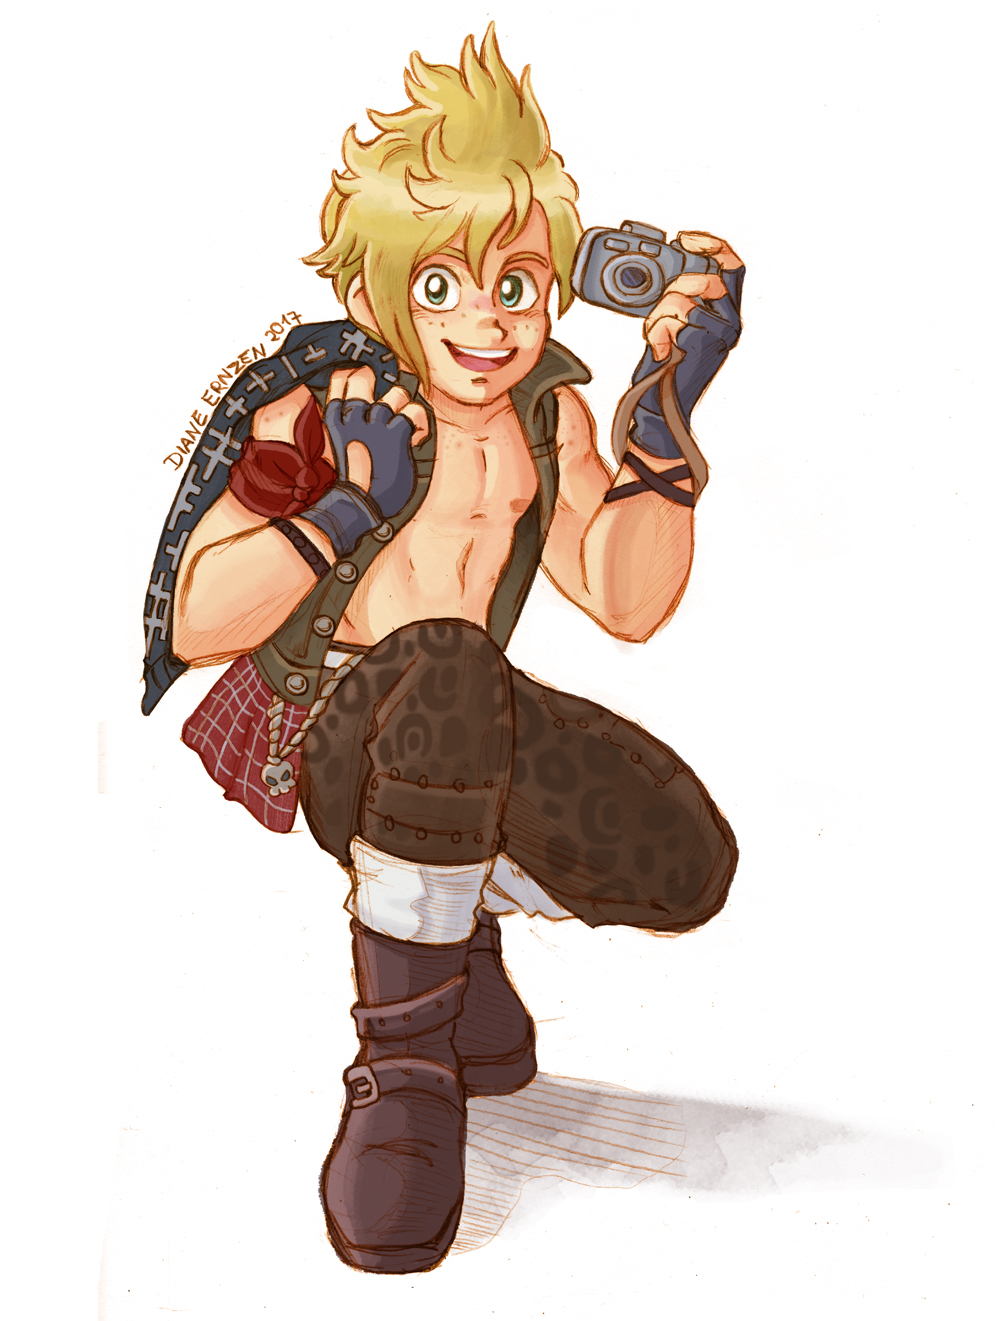 Prompto smile for the camera! by Yamatoking